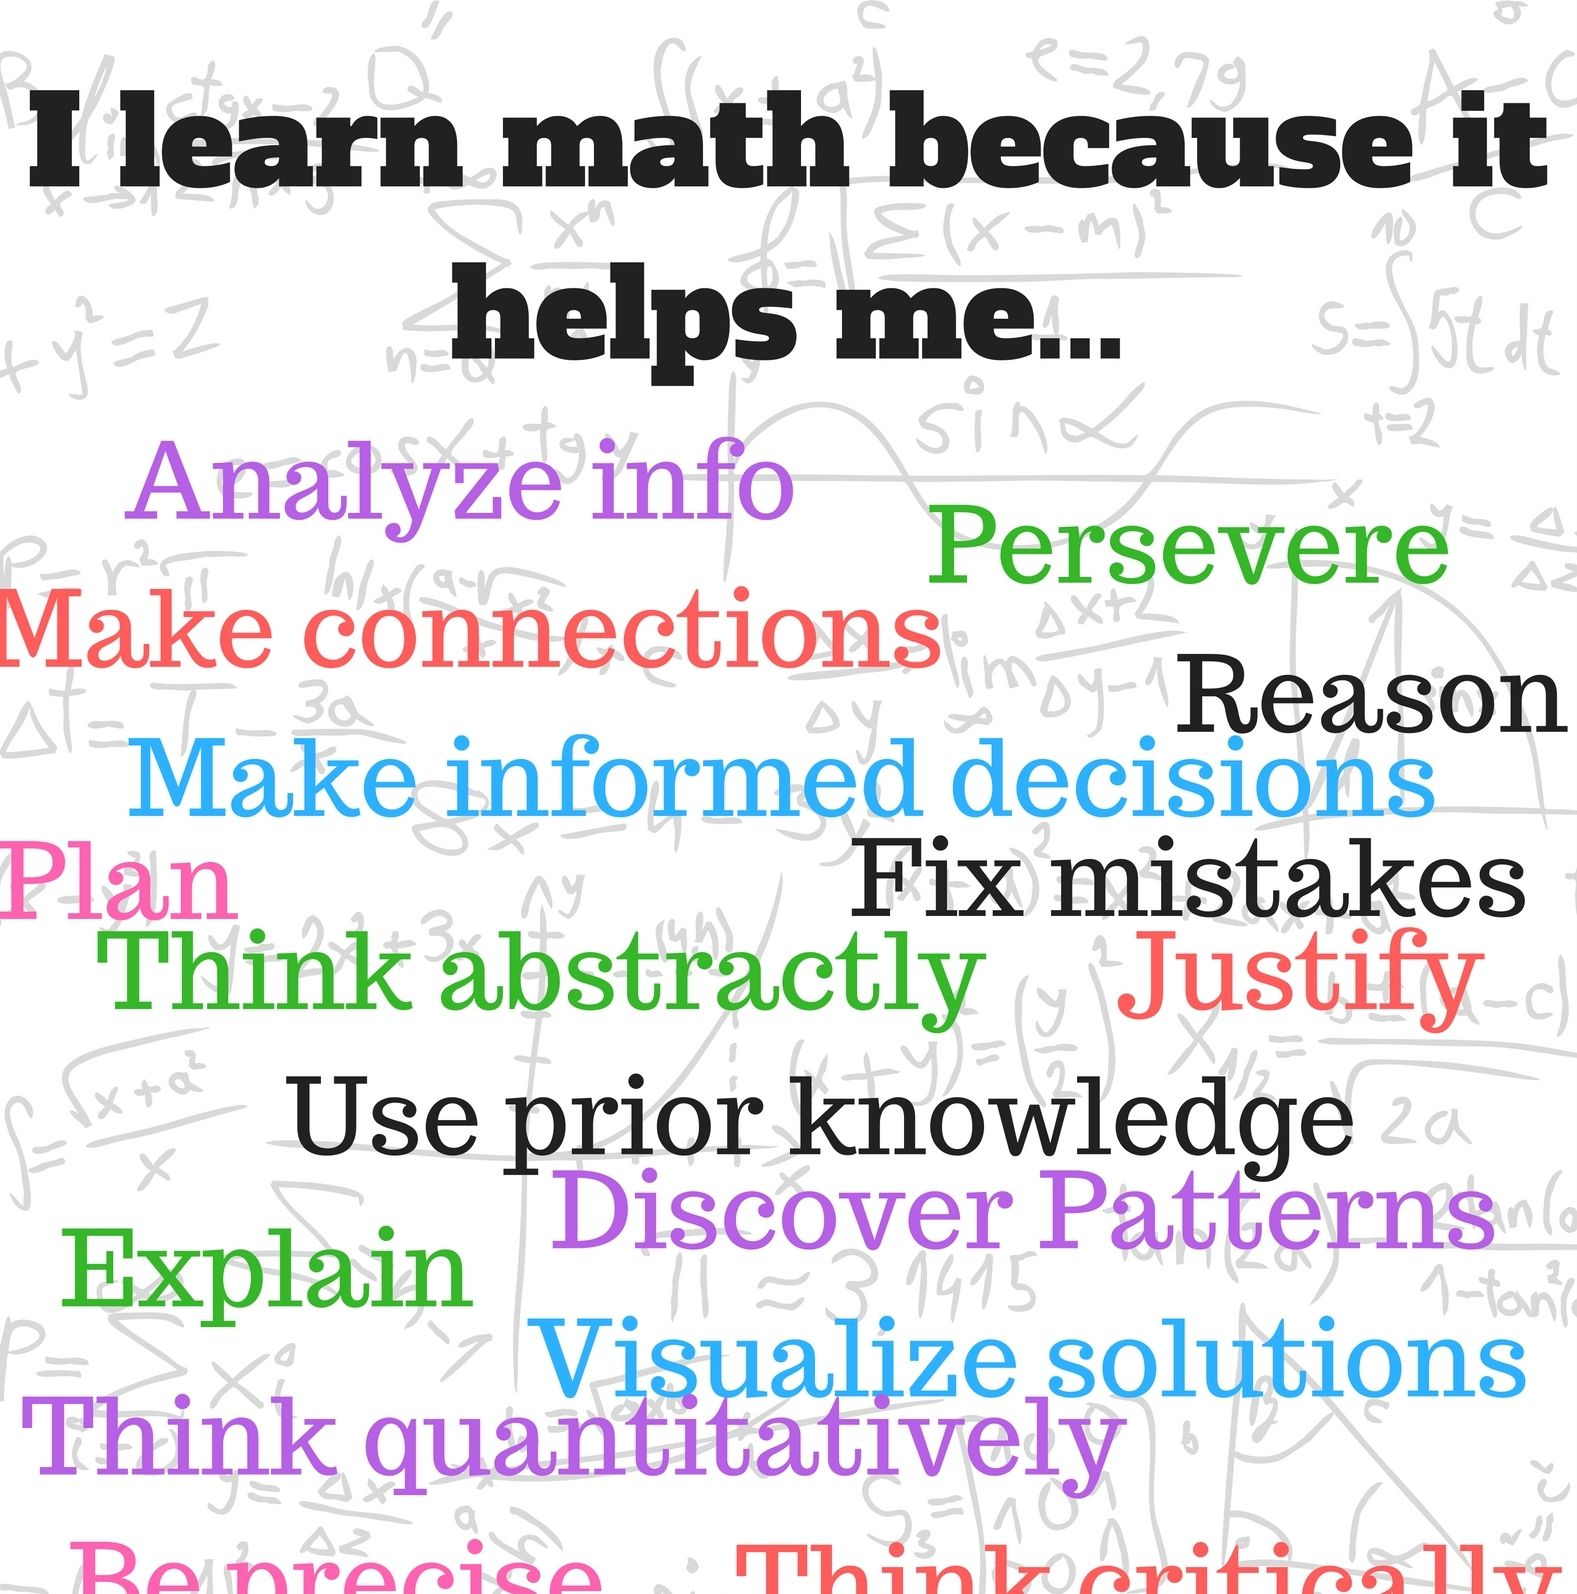 Why do we have to learn math? | Math | Math, Math lessons ...